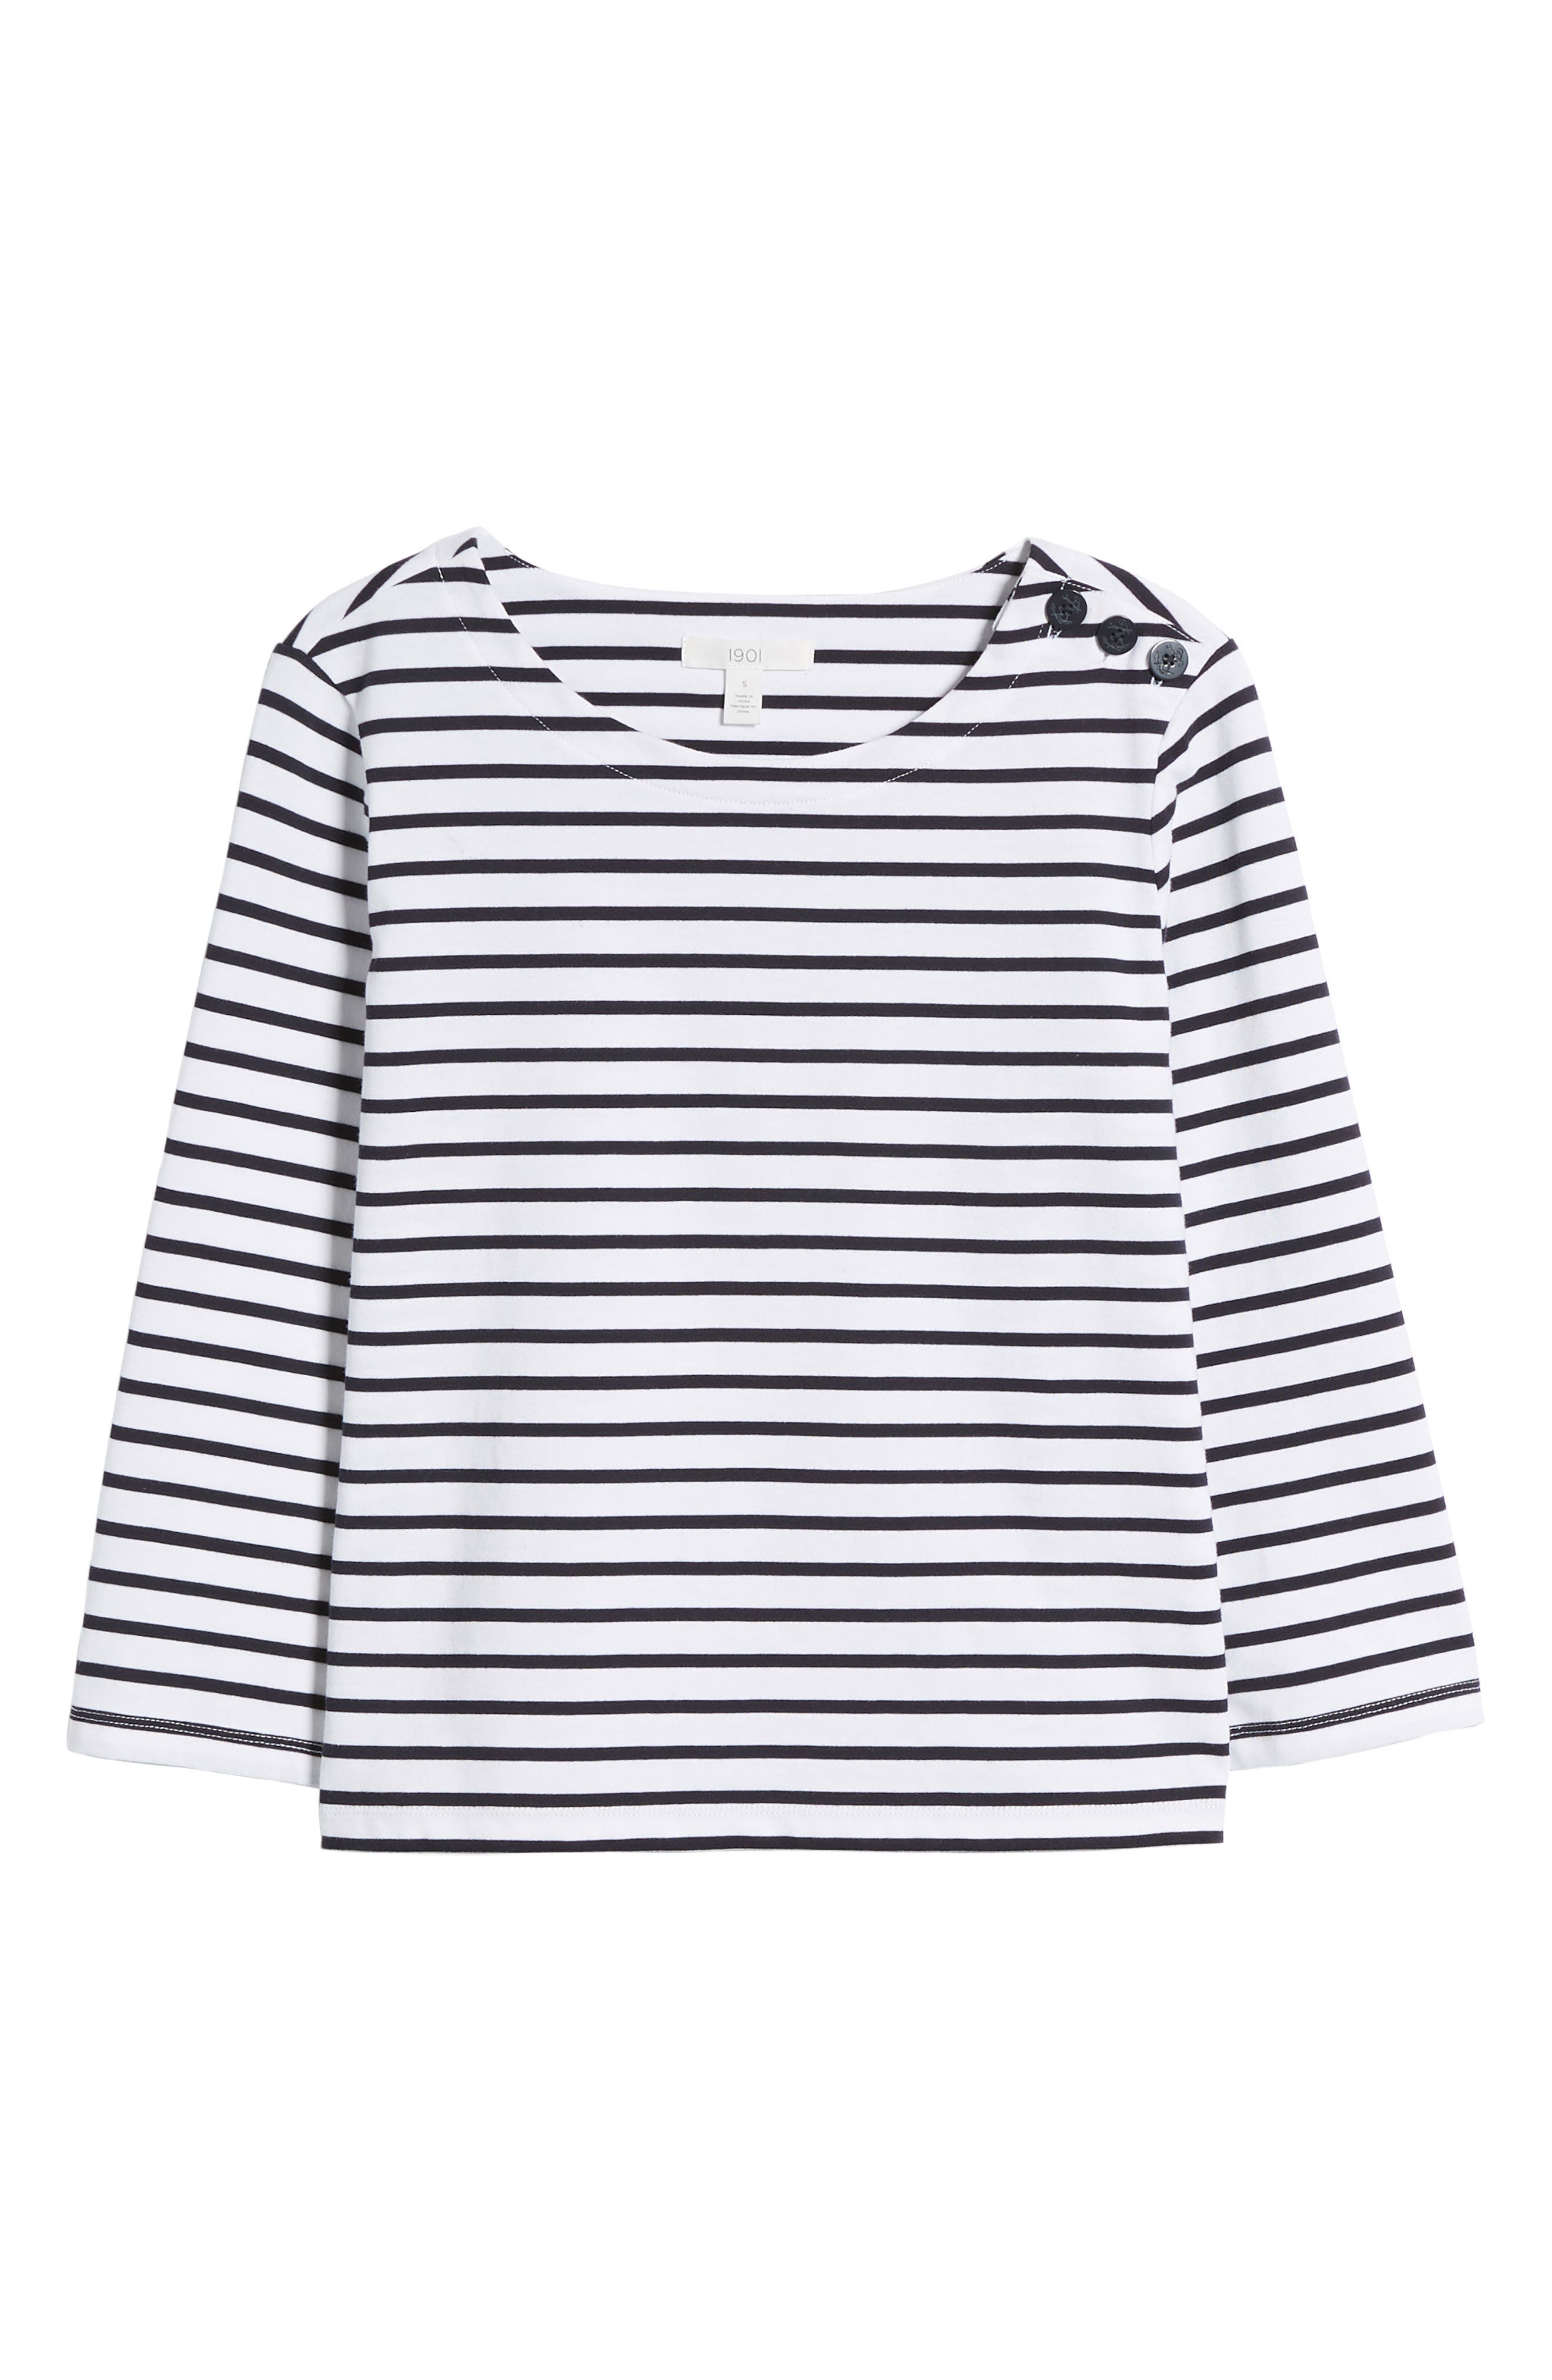 Shoulder Button Cotton Top,                             Alternate thumbnail 7, color,                             White- Navy Stripe